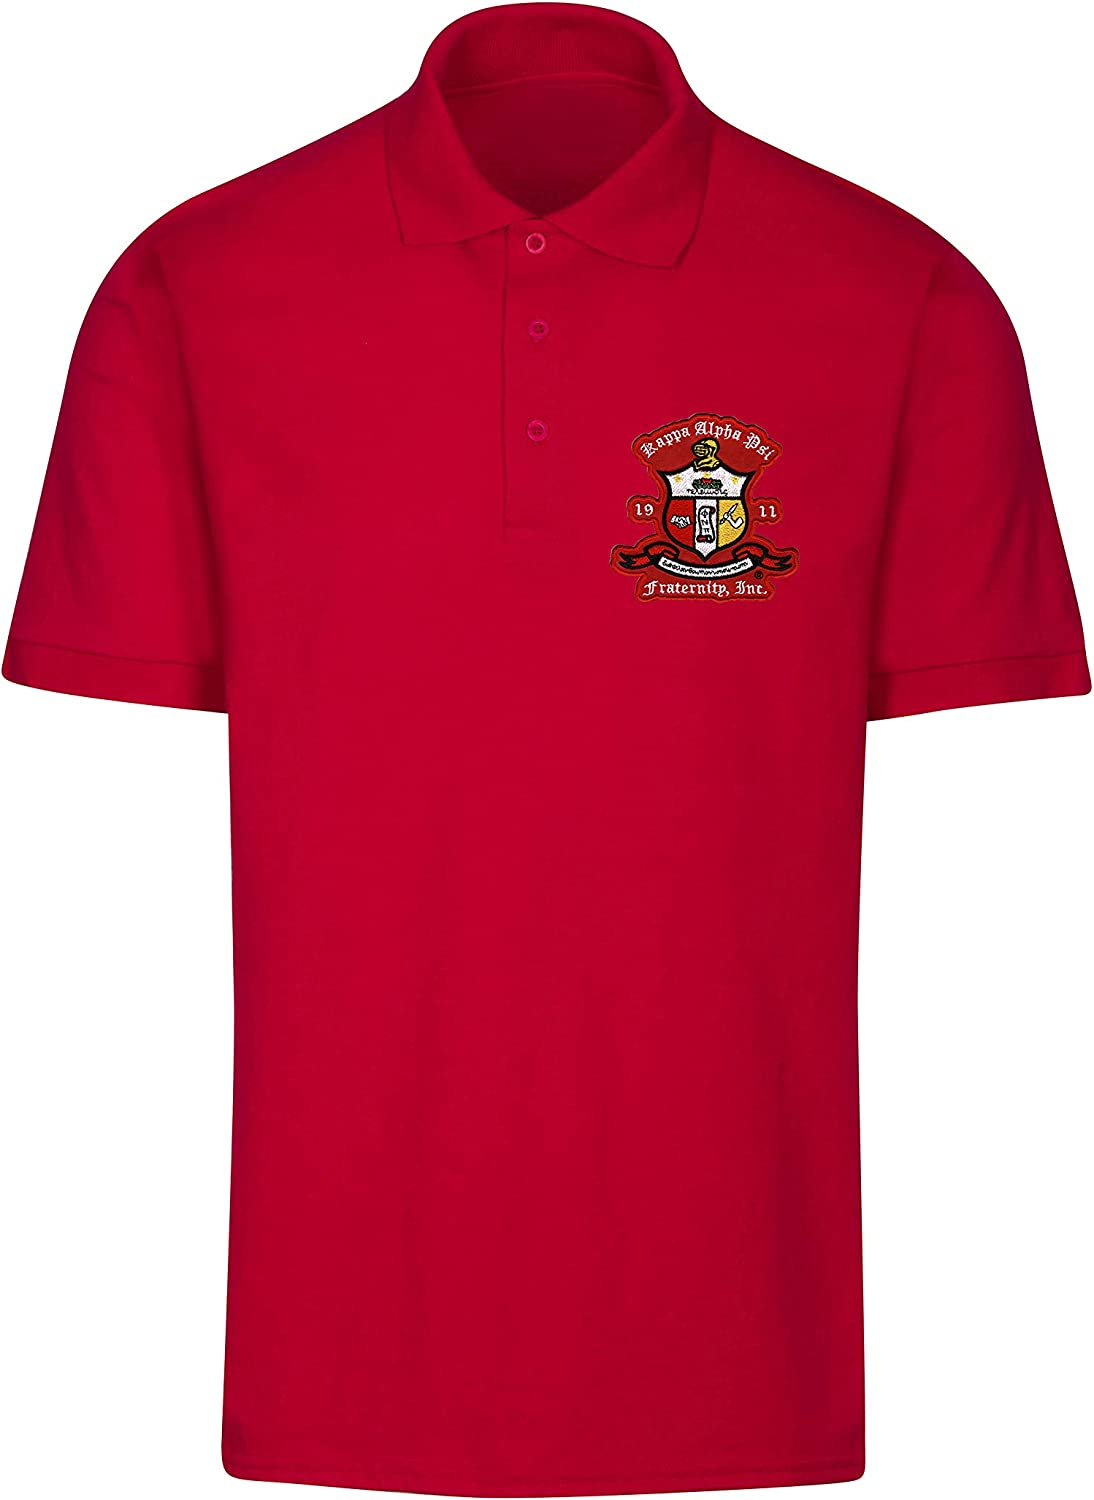 Kappa Alpha Psi Polo Complete Free Shipping All items in the store Shirt